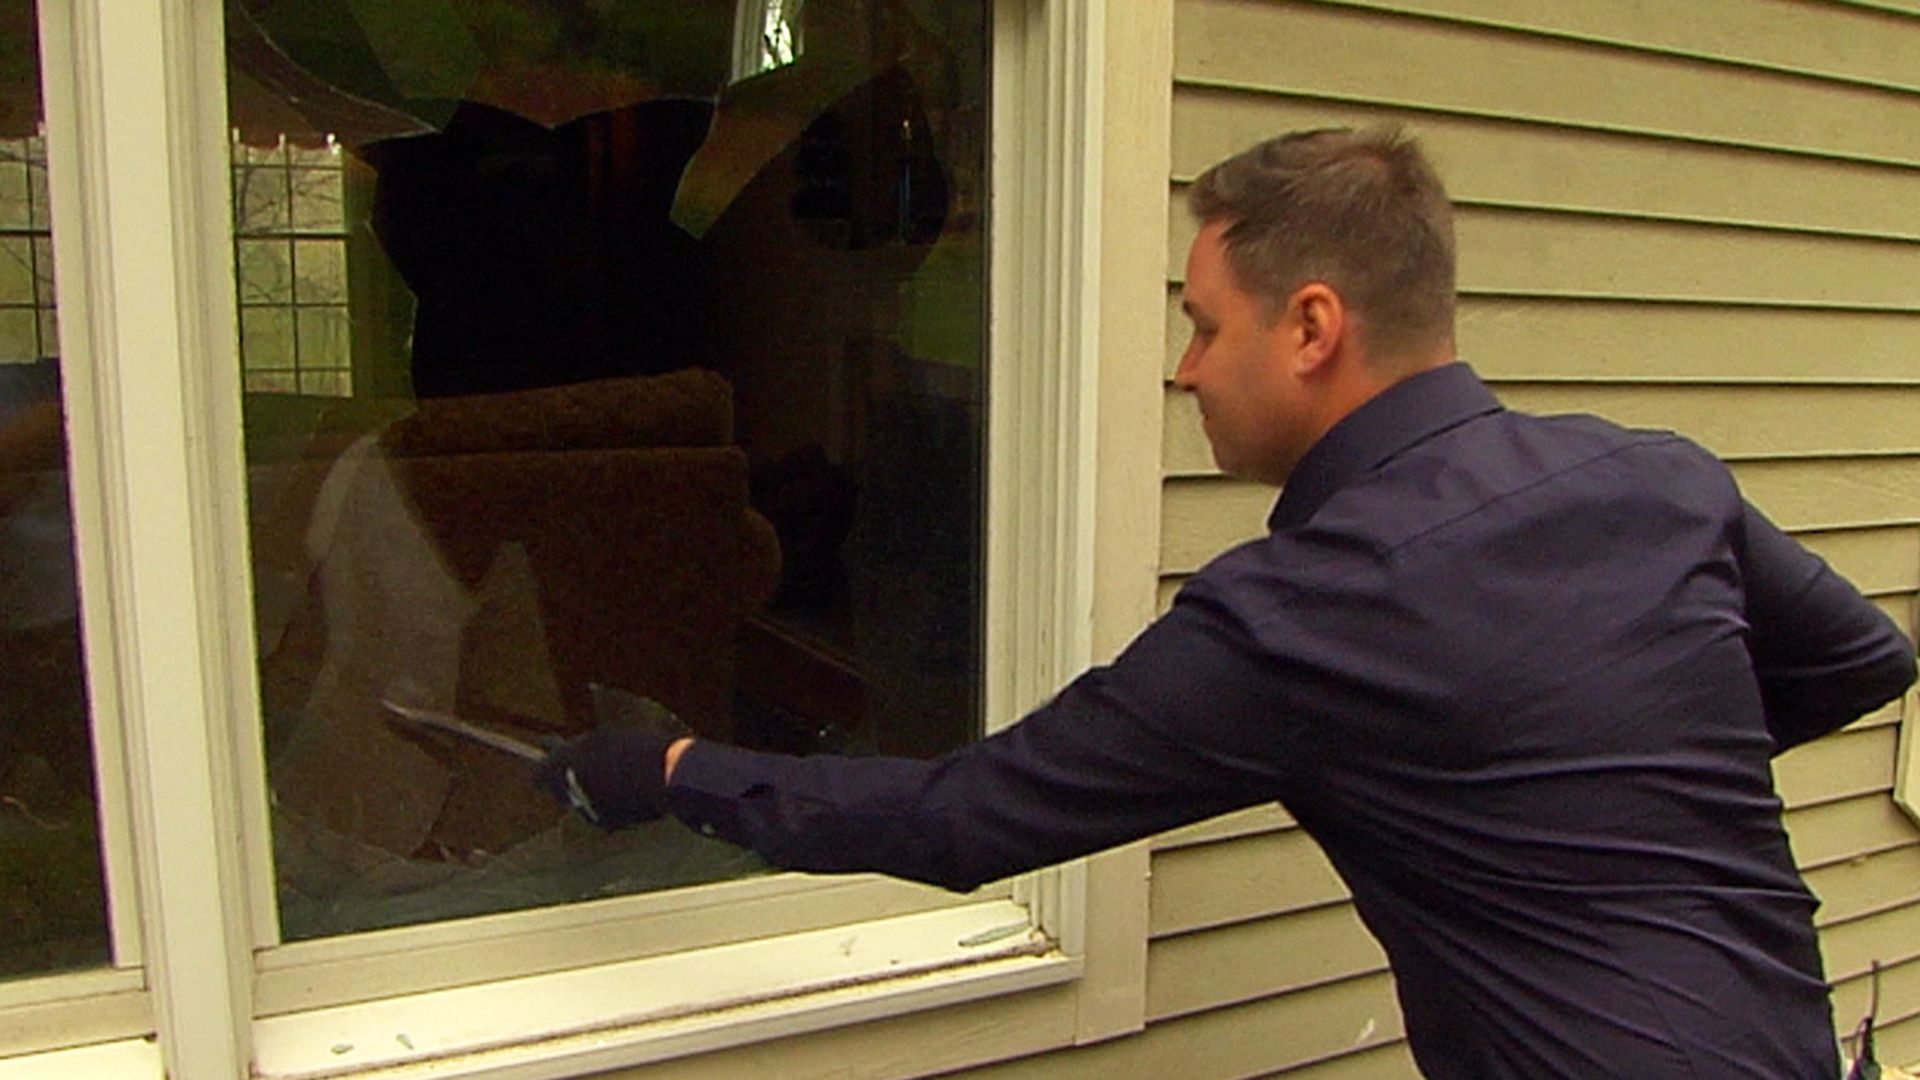 Rossen Demonstrates New Home Security Tech That Alerts You